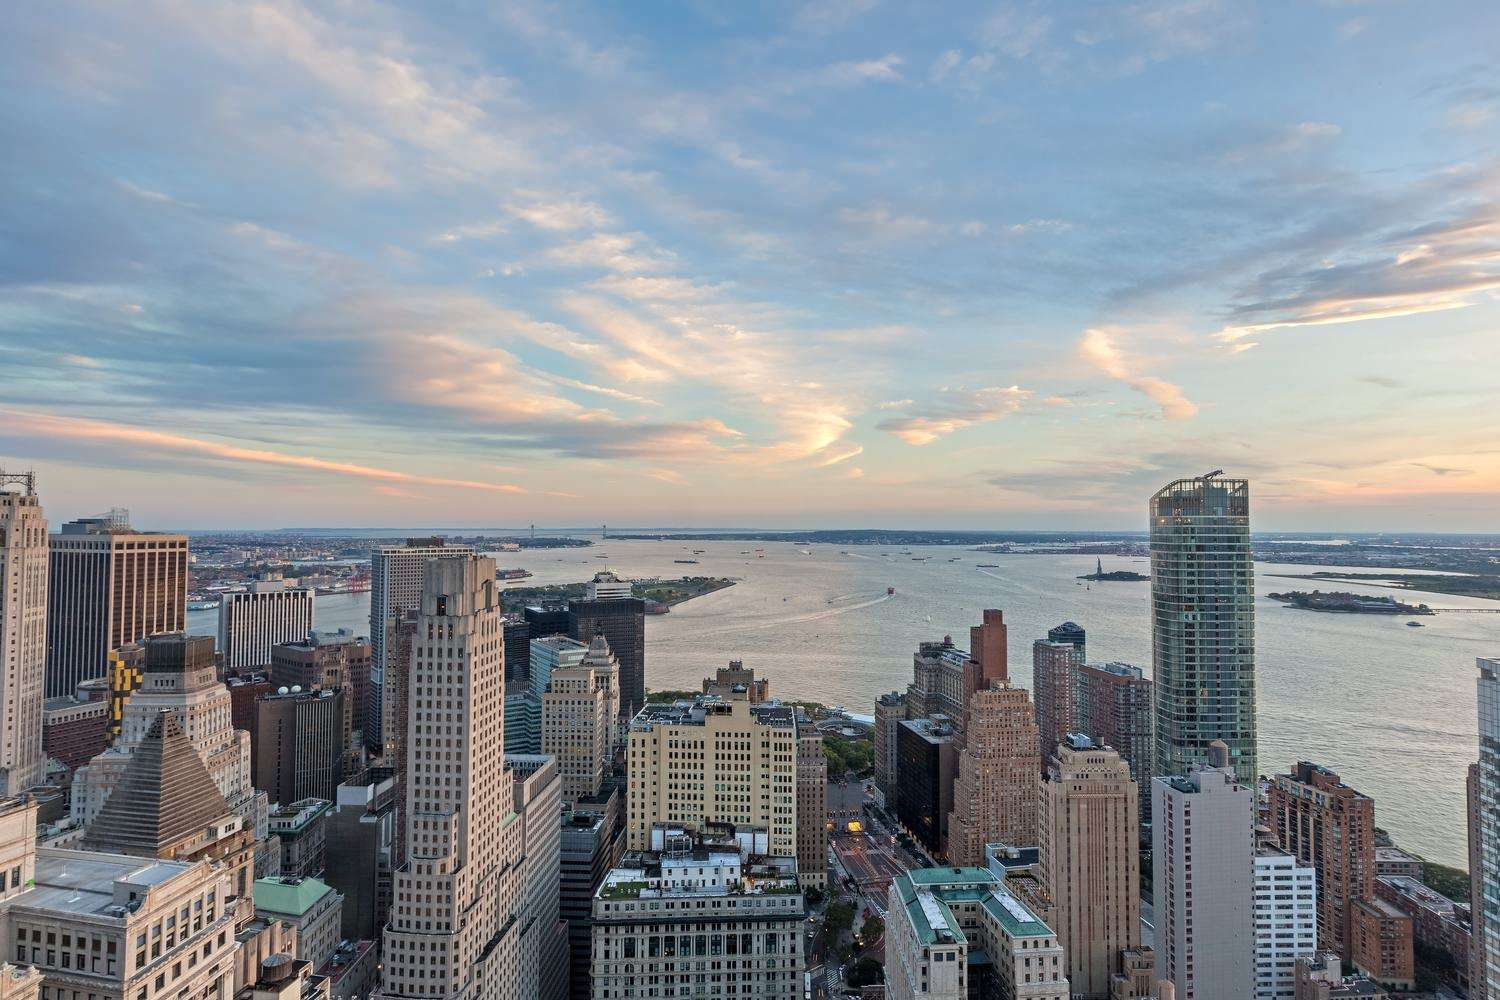 Views from One Liberty Plaza